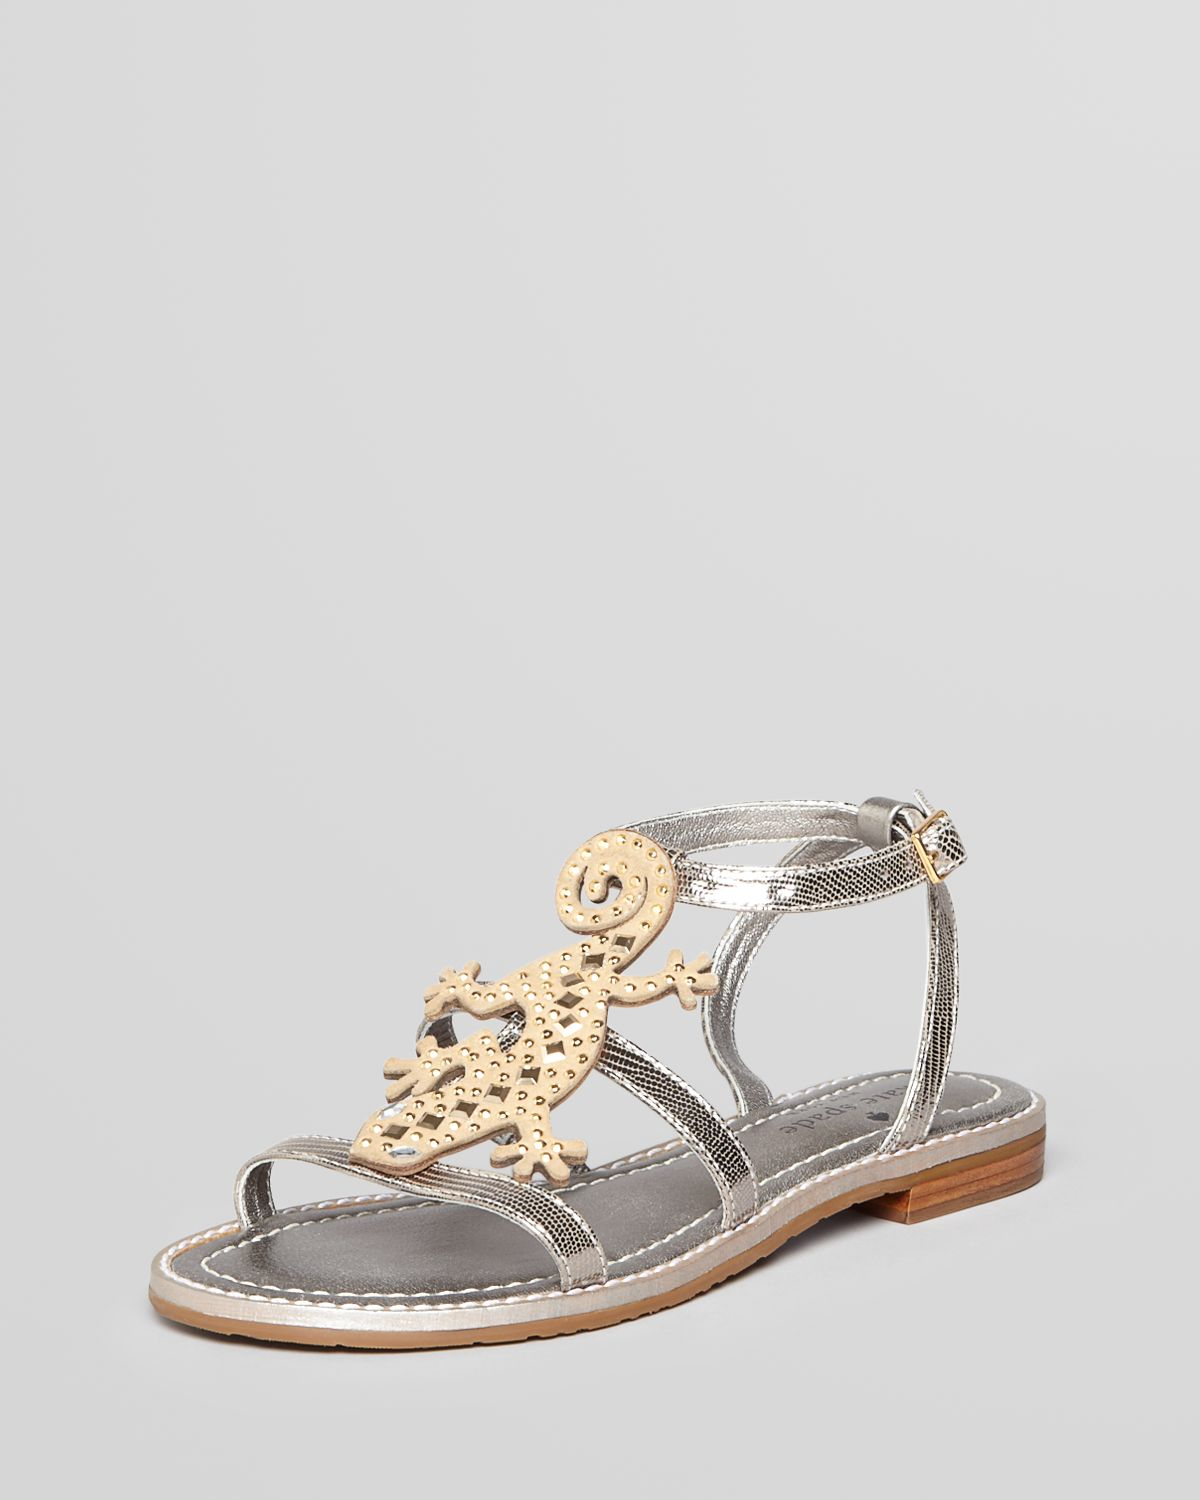 9d666a796 Lyst - Kate Spade Sandals Slick Lizard Flat in Metallic